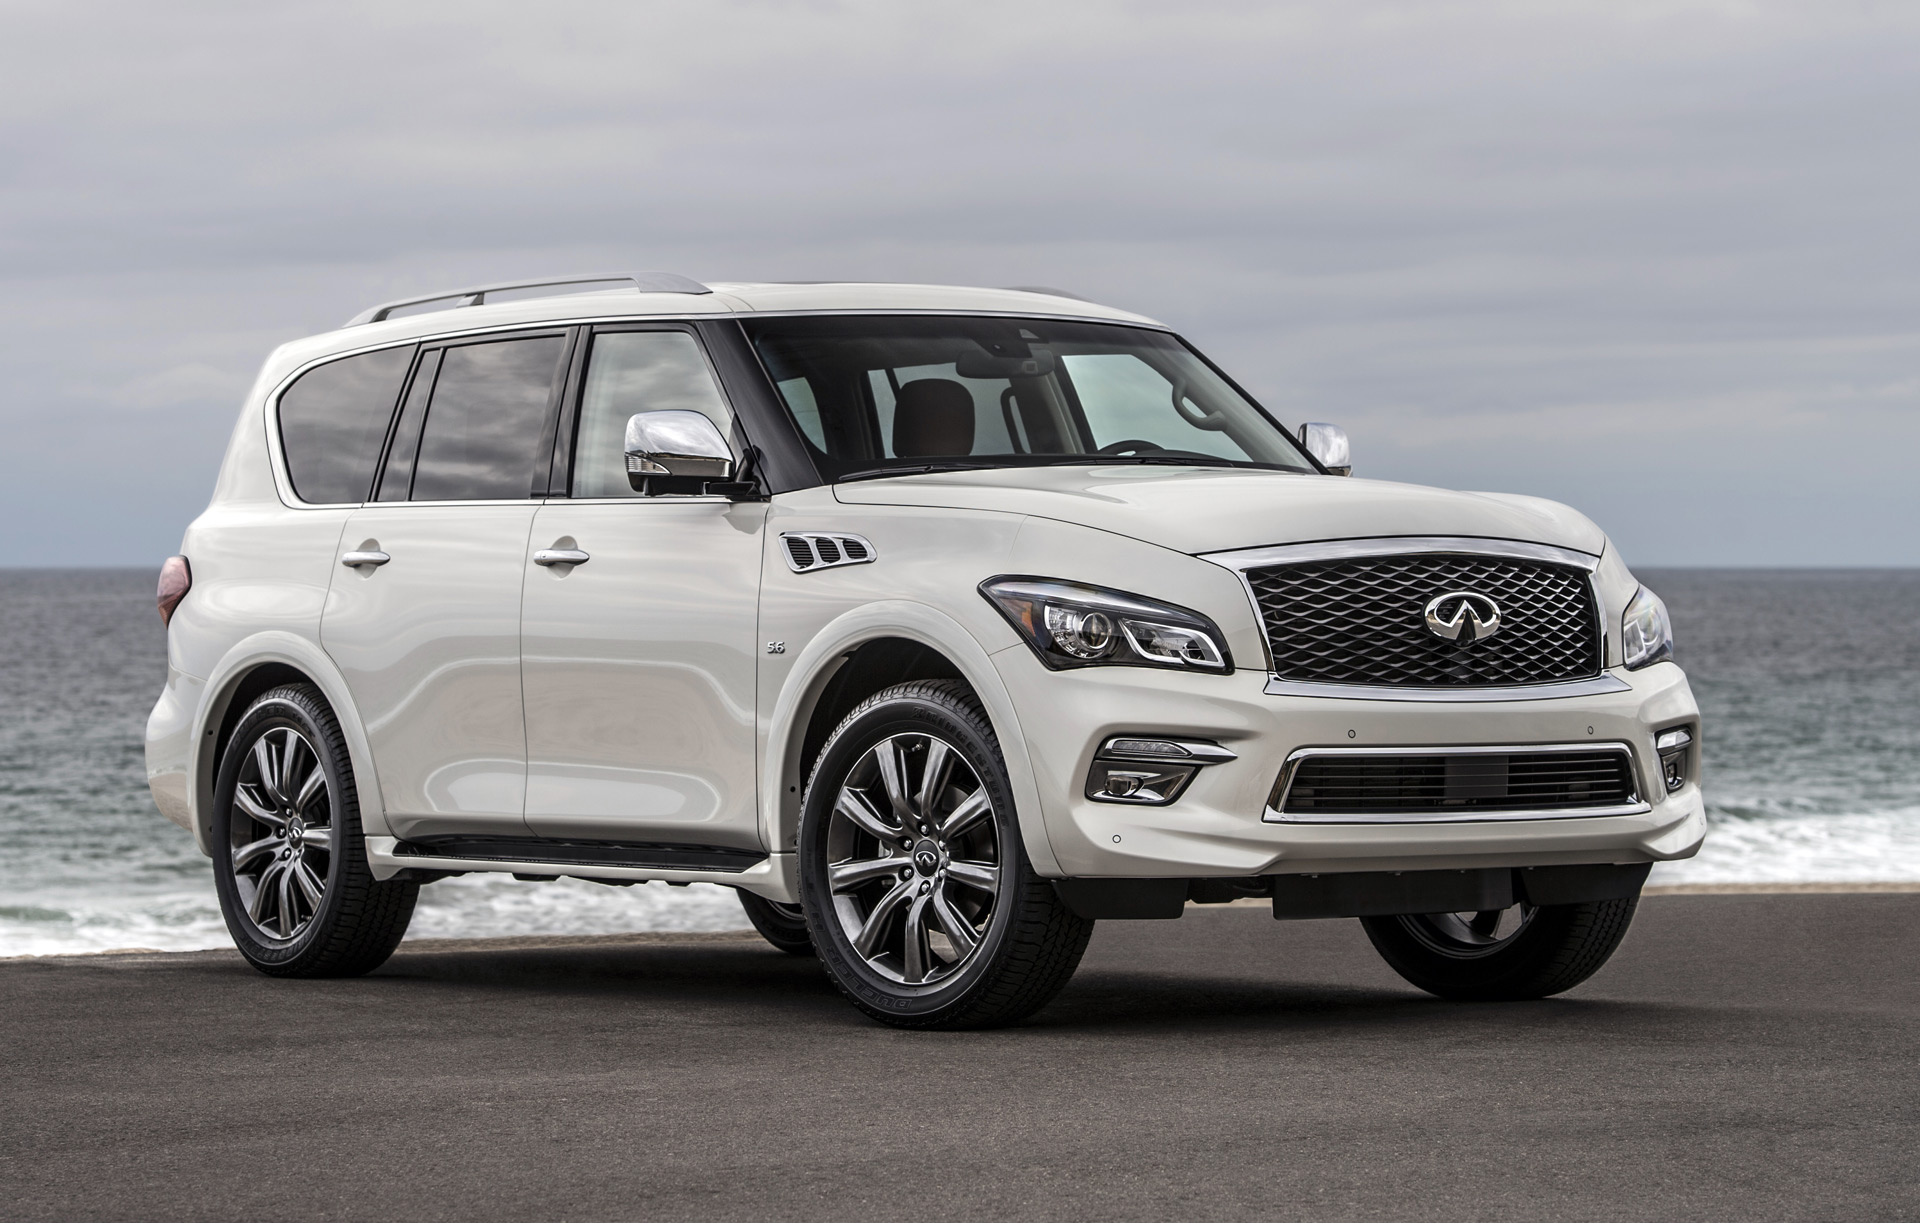 2017 Infiniti Qx80 Safety Review And Crash Test Ratings